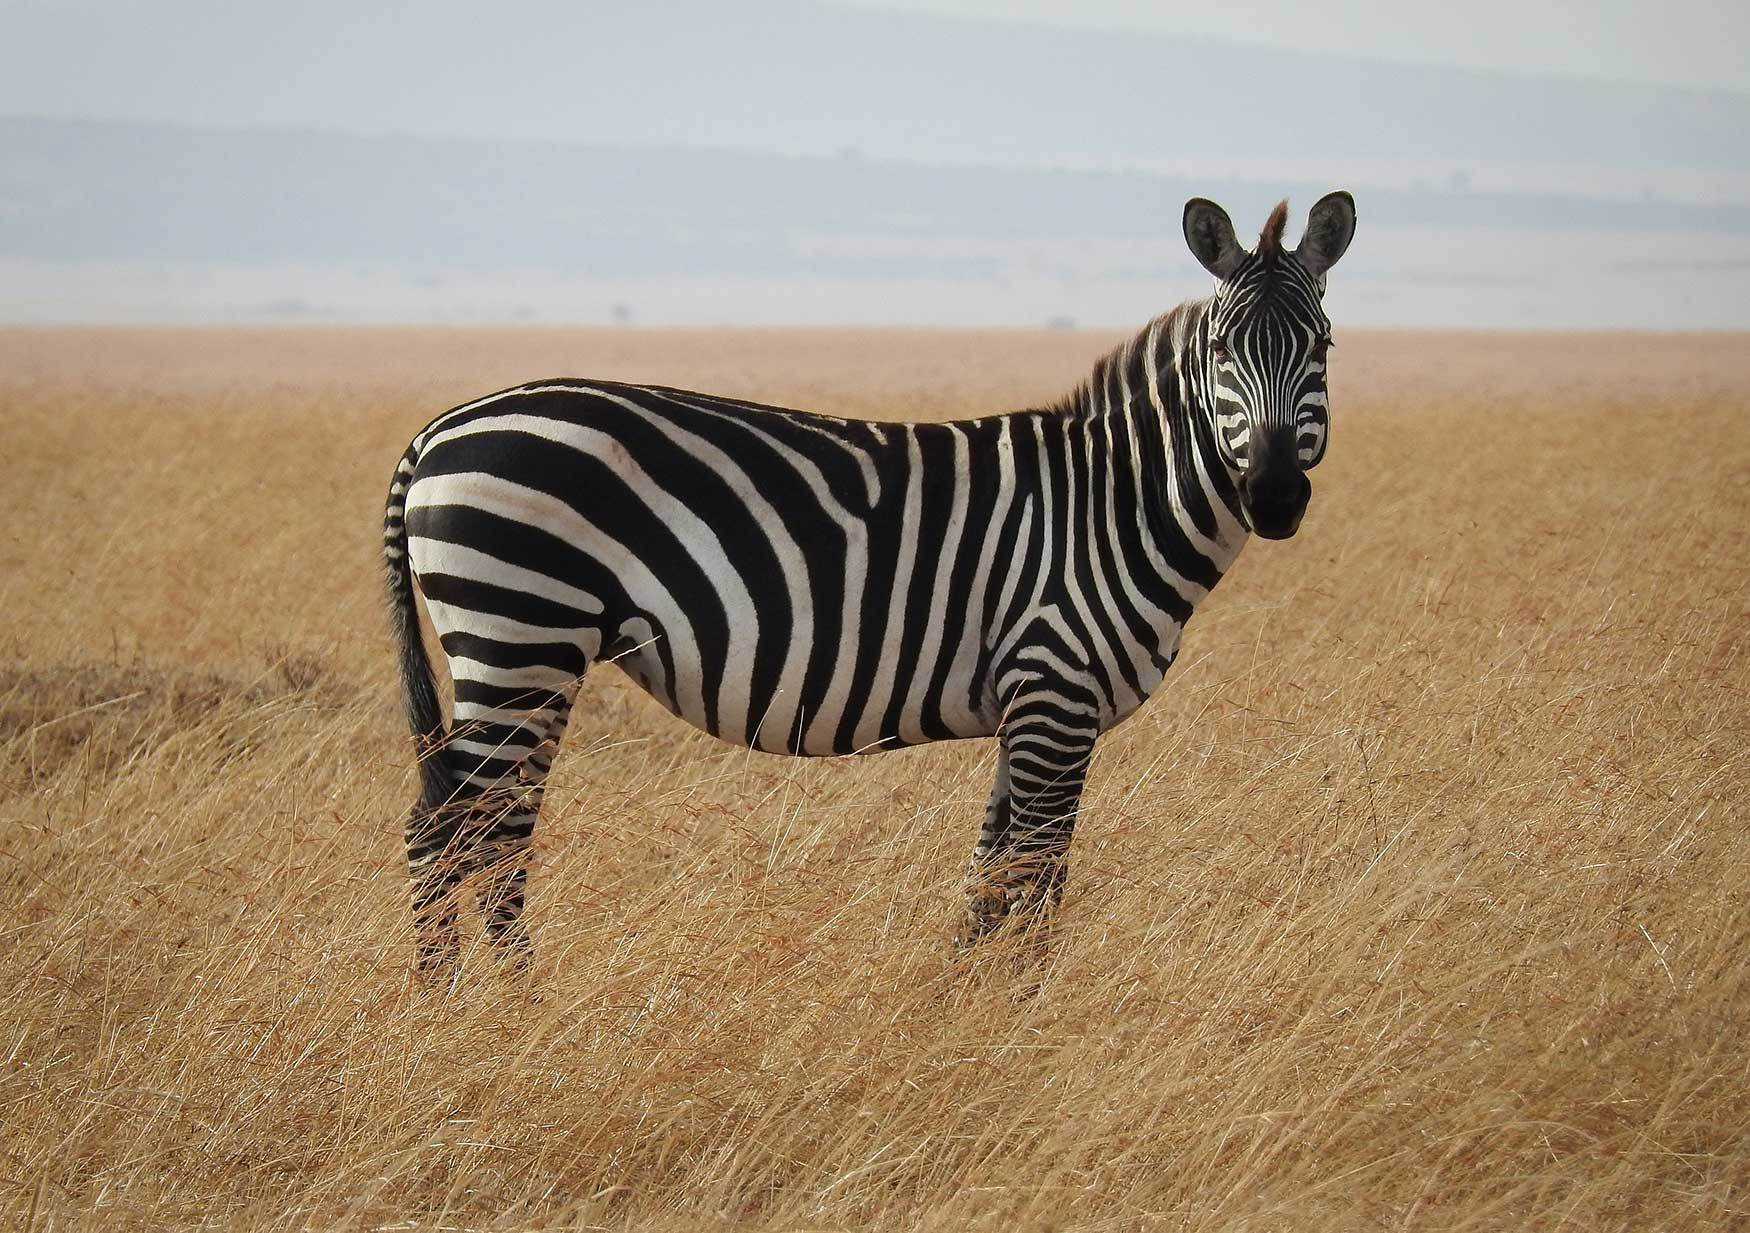 The zebra stripes follow the Fibonacci sequence.